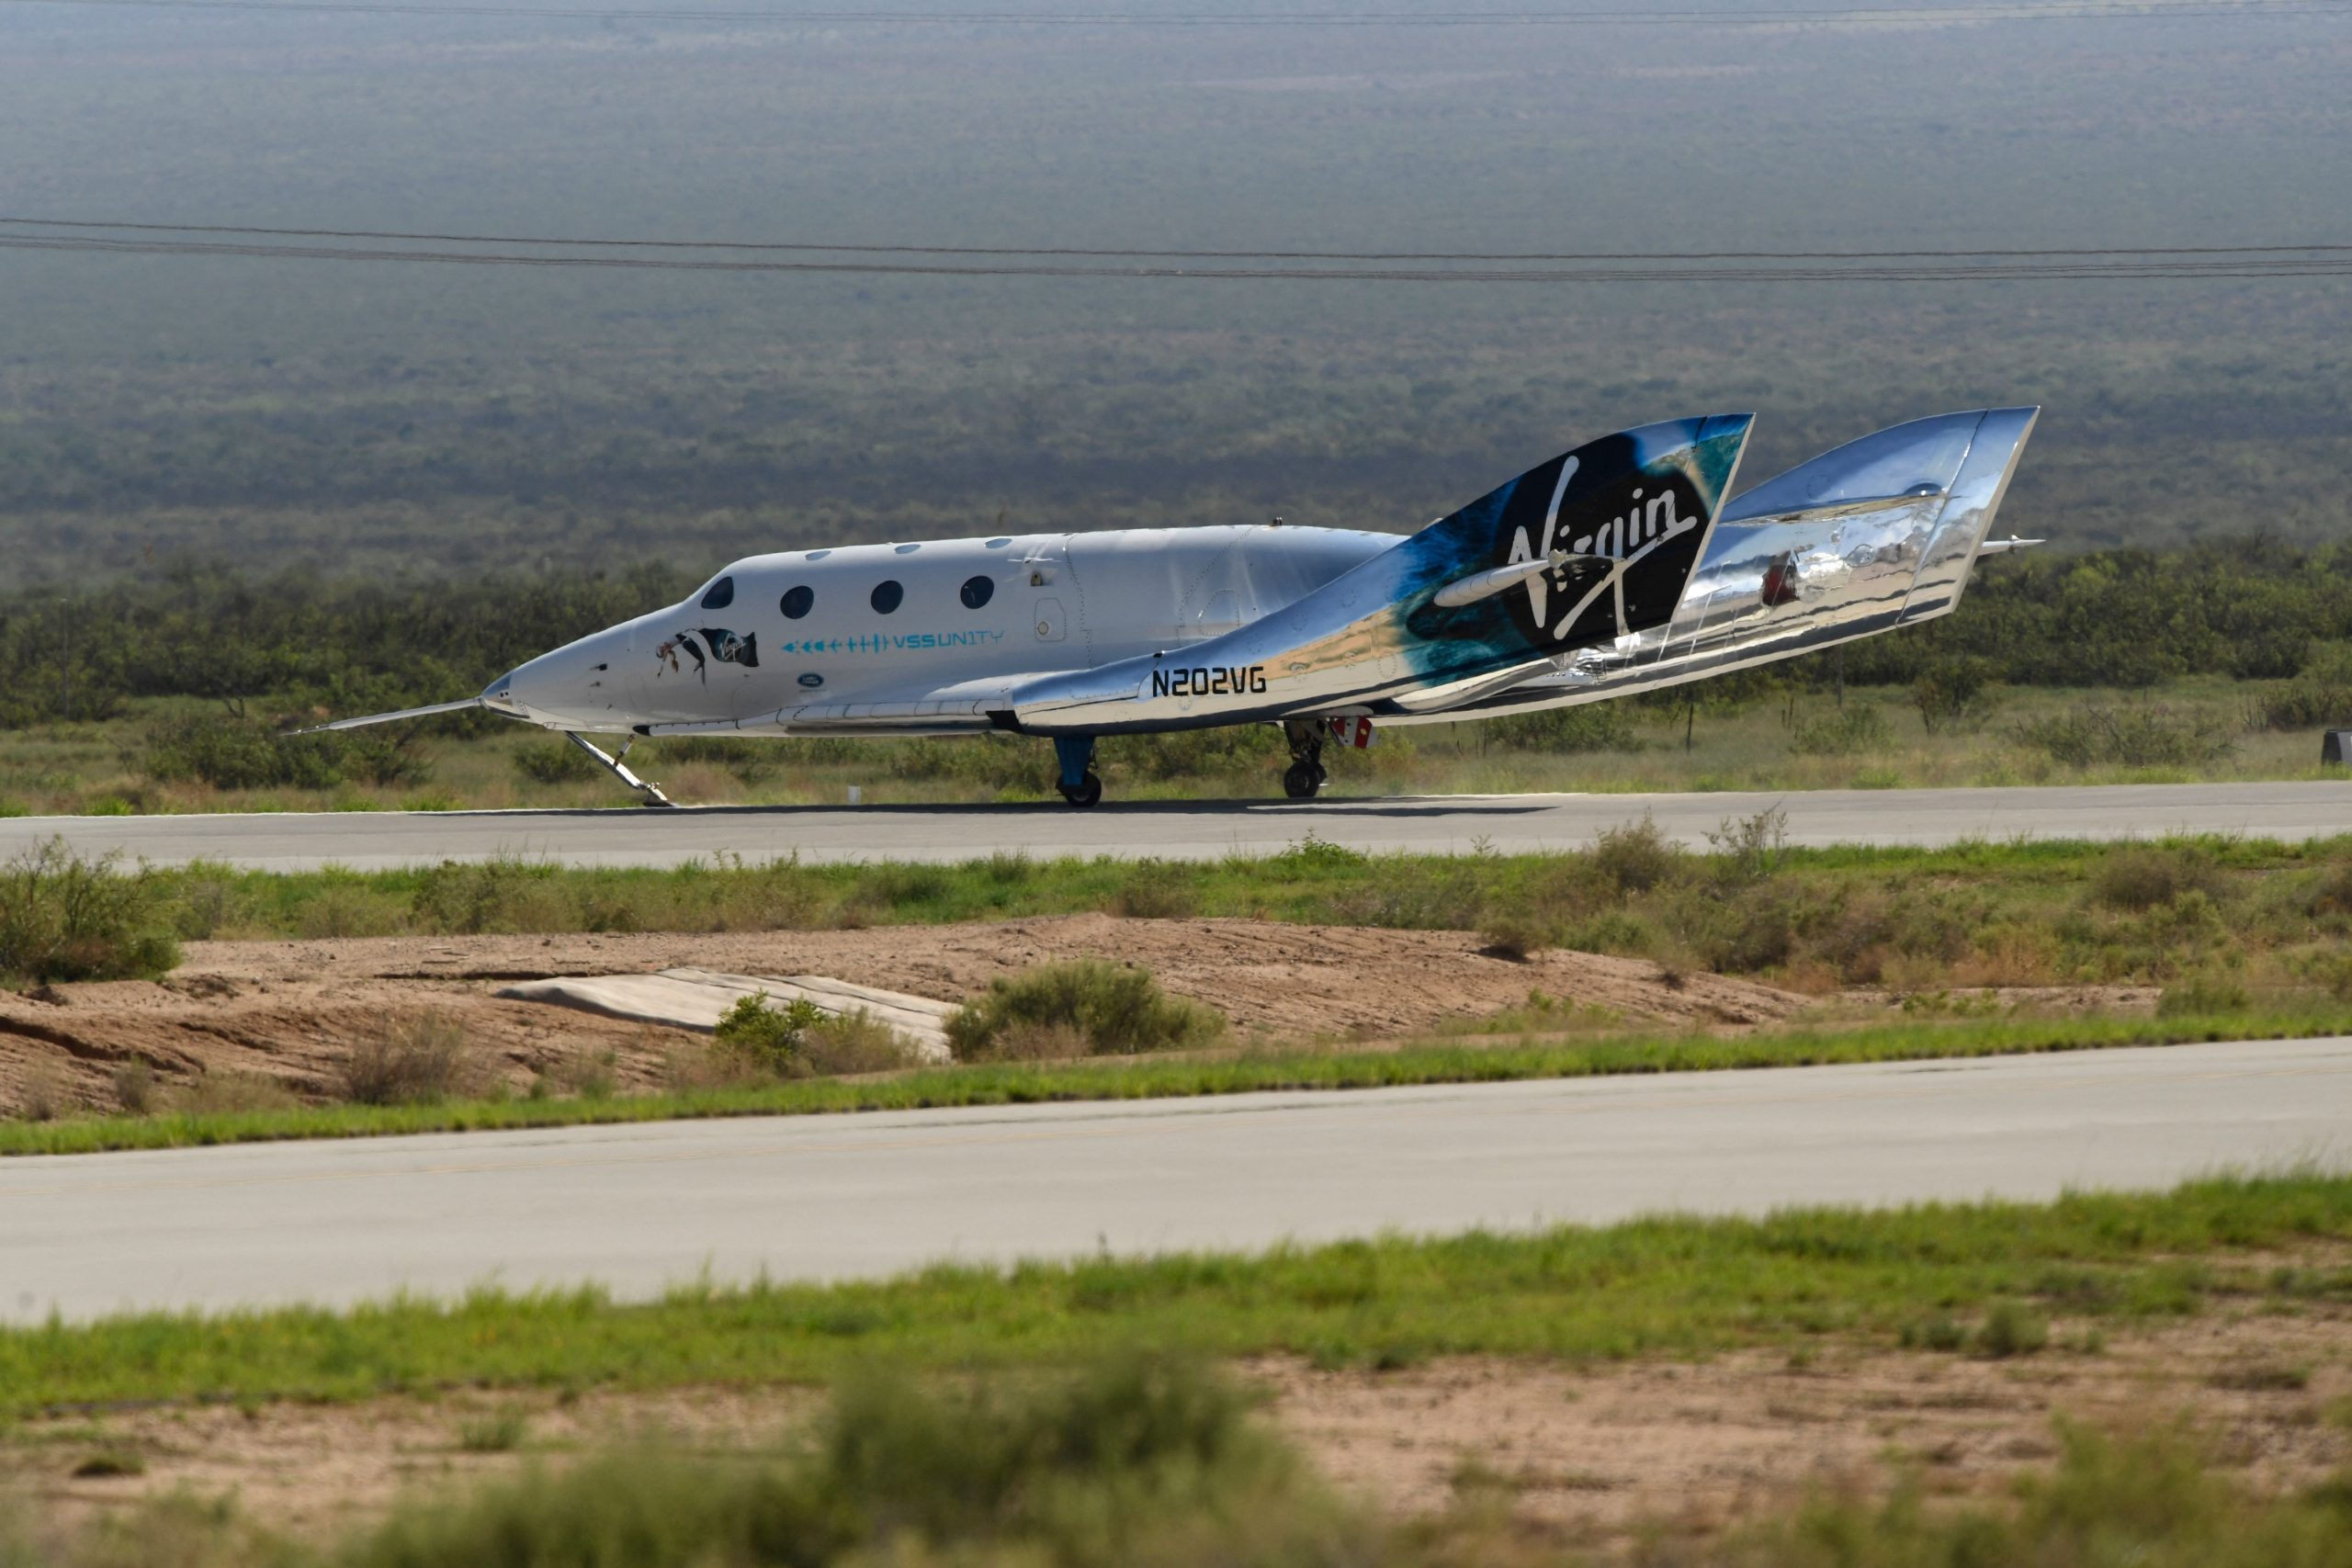 FAA grounds Virgin Galactic space flights during anomaly investigation (updated)